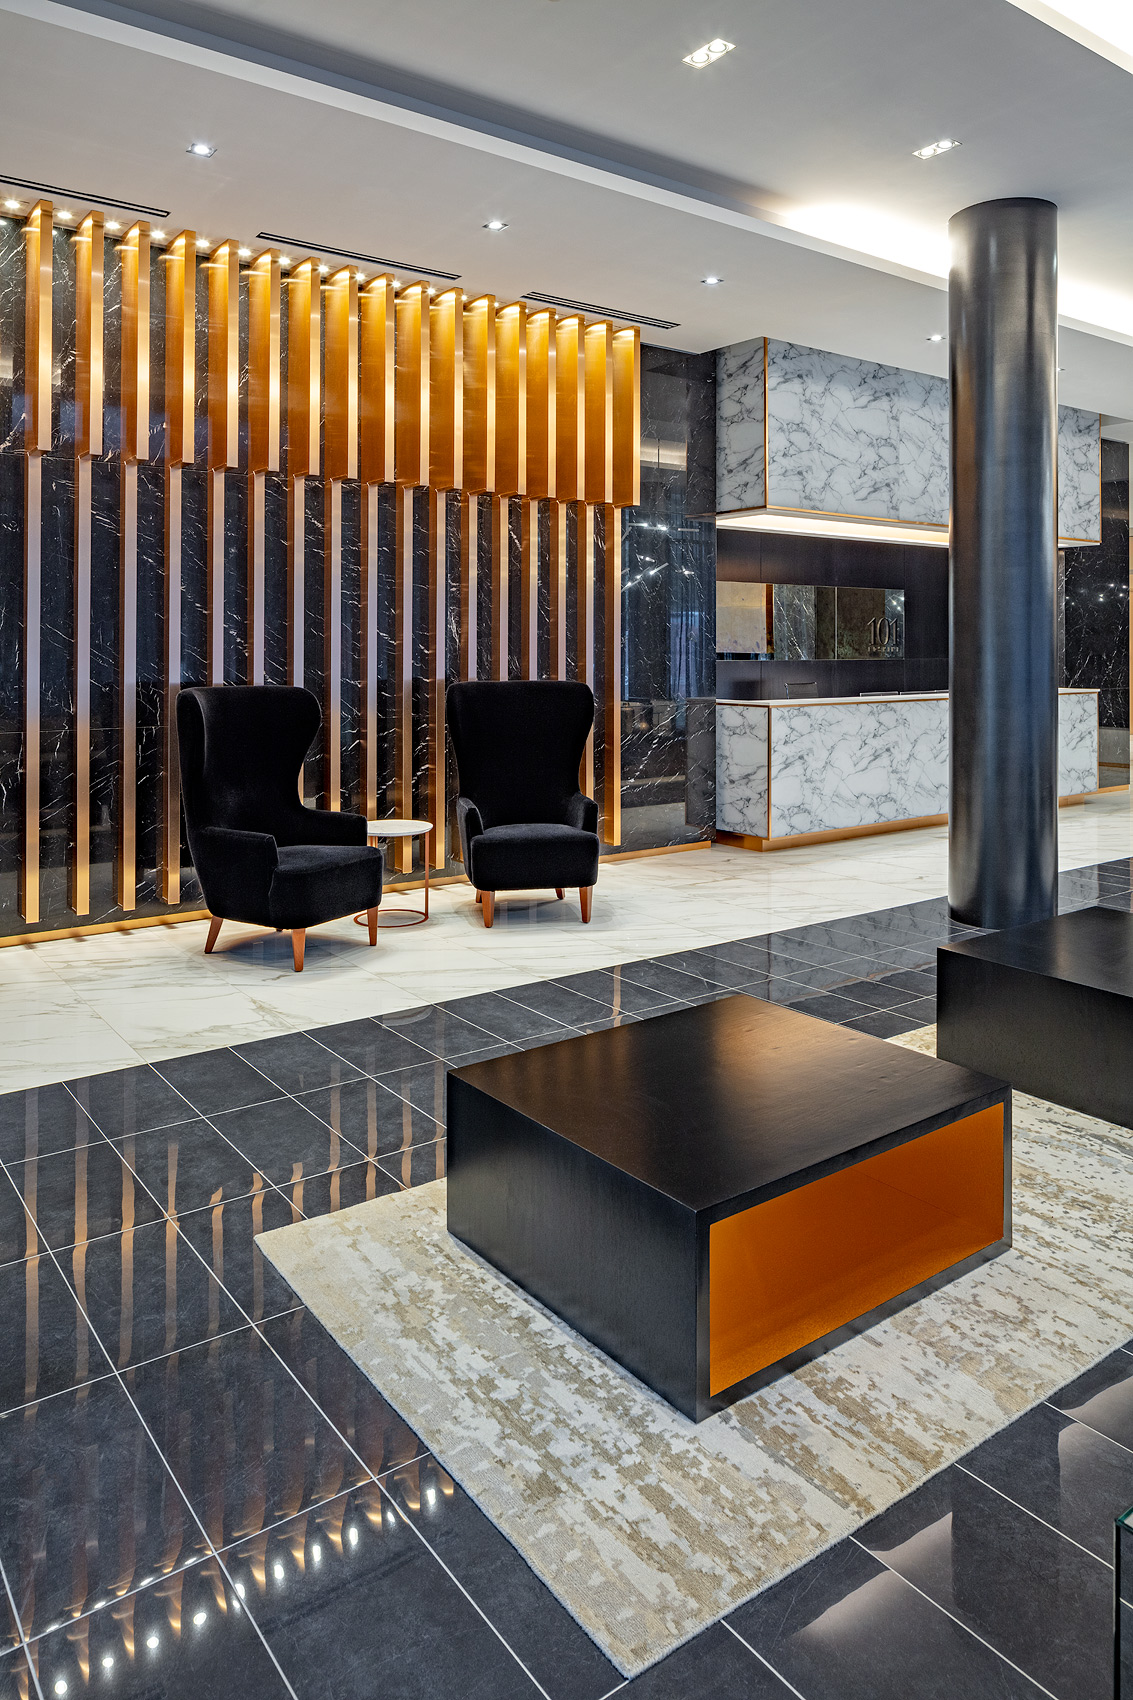 Lobby with stone floor, Peter A. Sellar Architectural Photographer